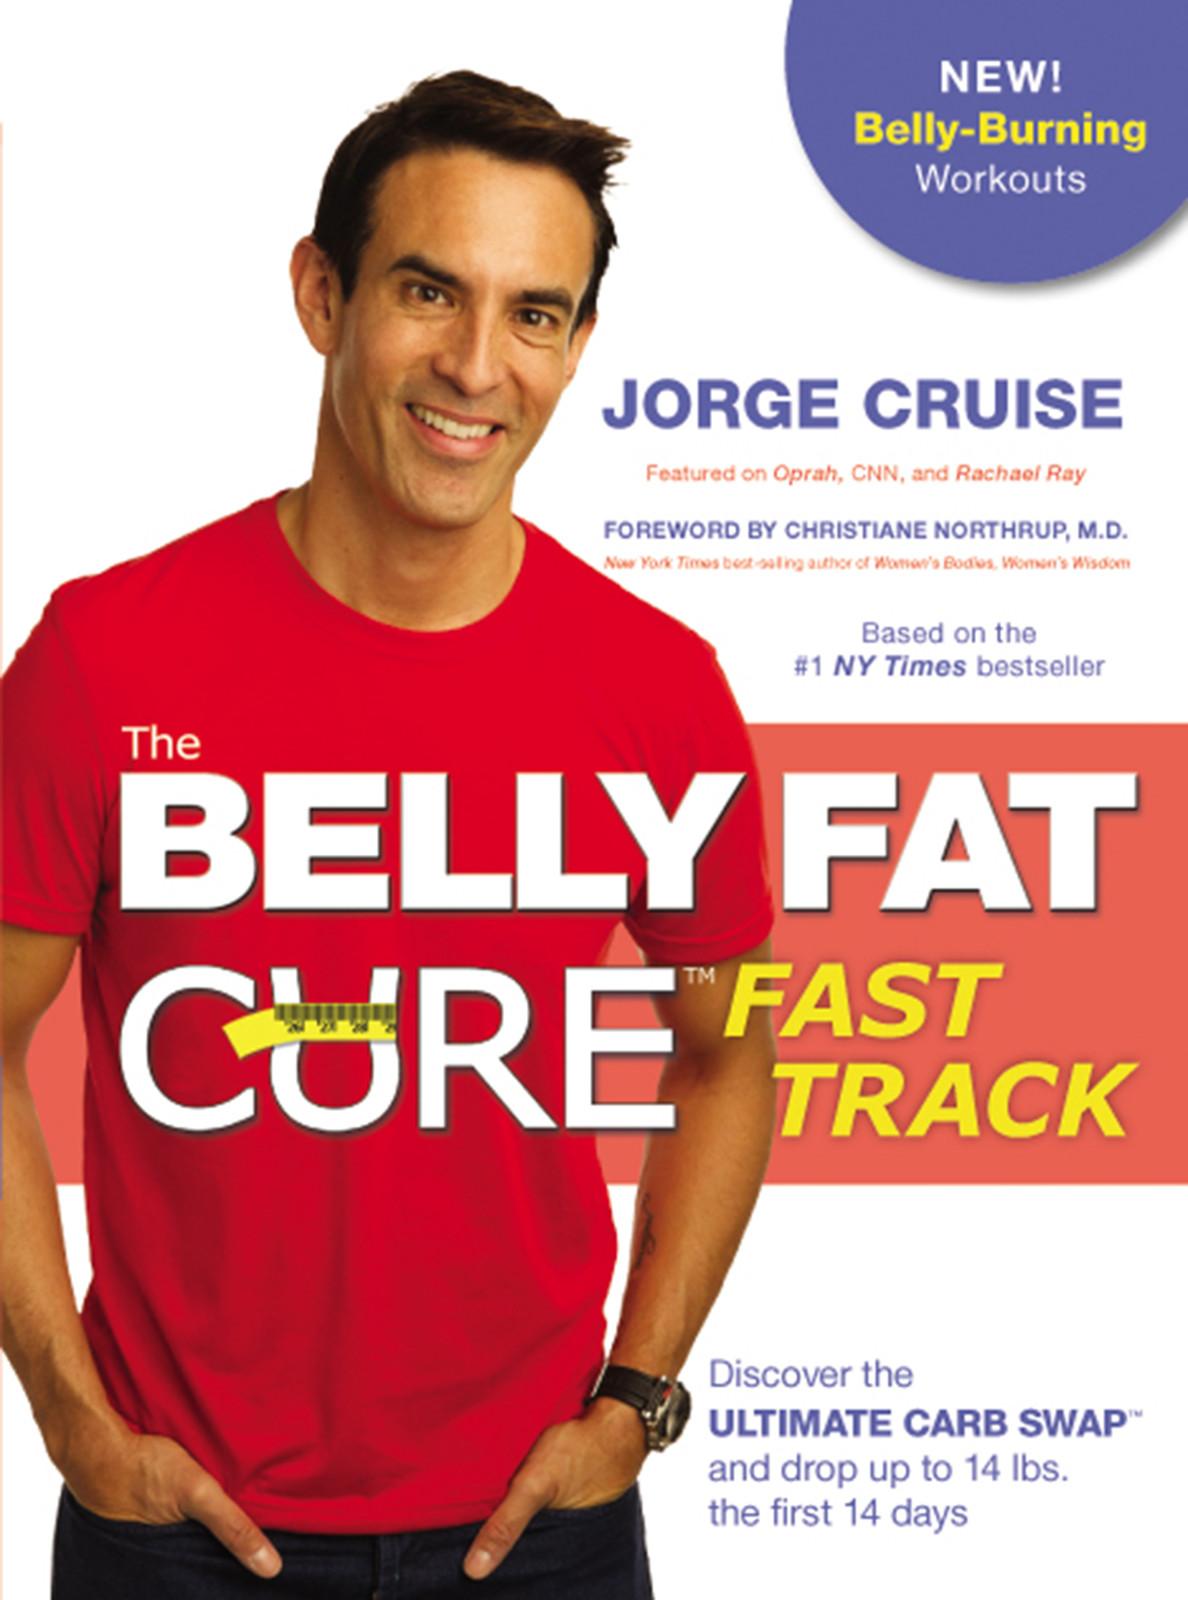 Belly fat cure fast track review